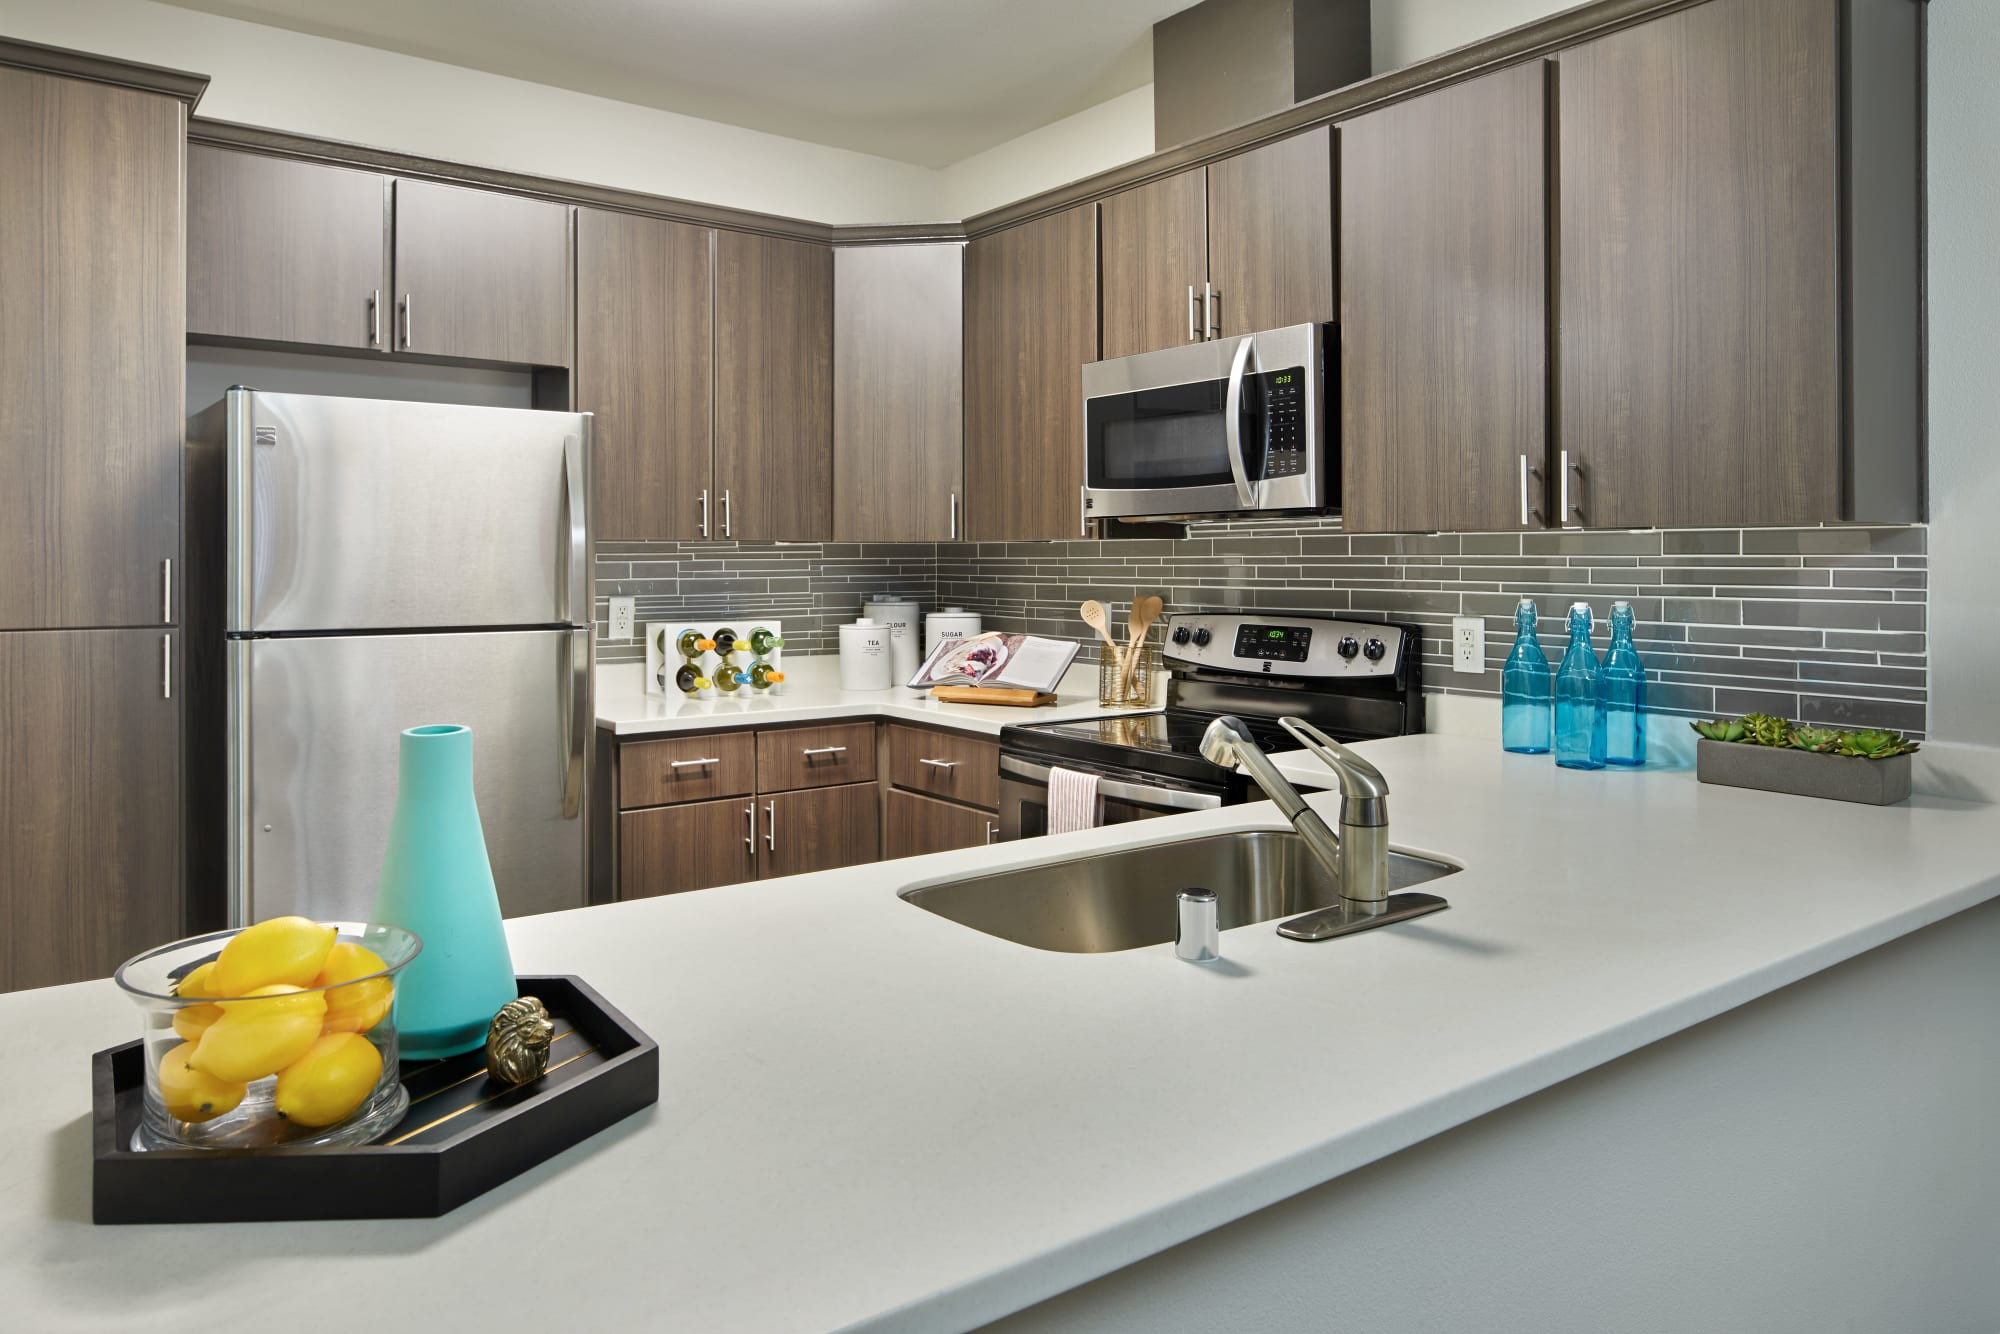 Apartments Near Green River Brookside Village for Green River Community College Students in Auburn, WA